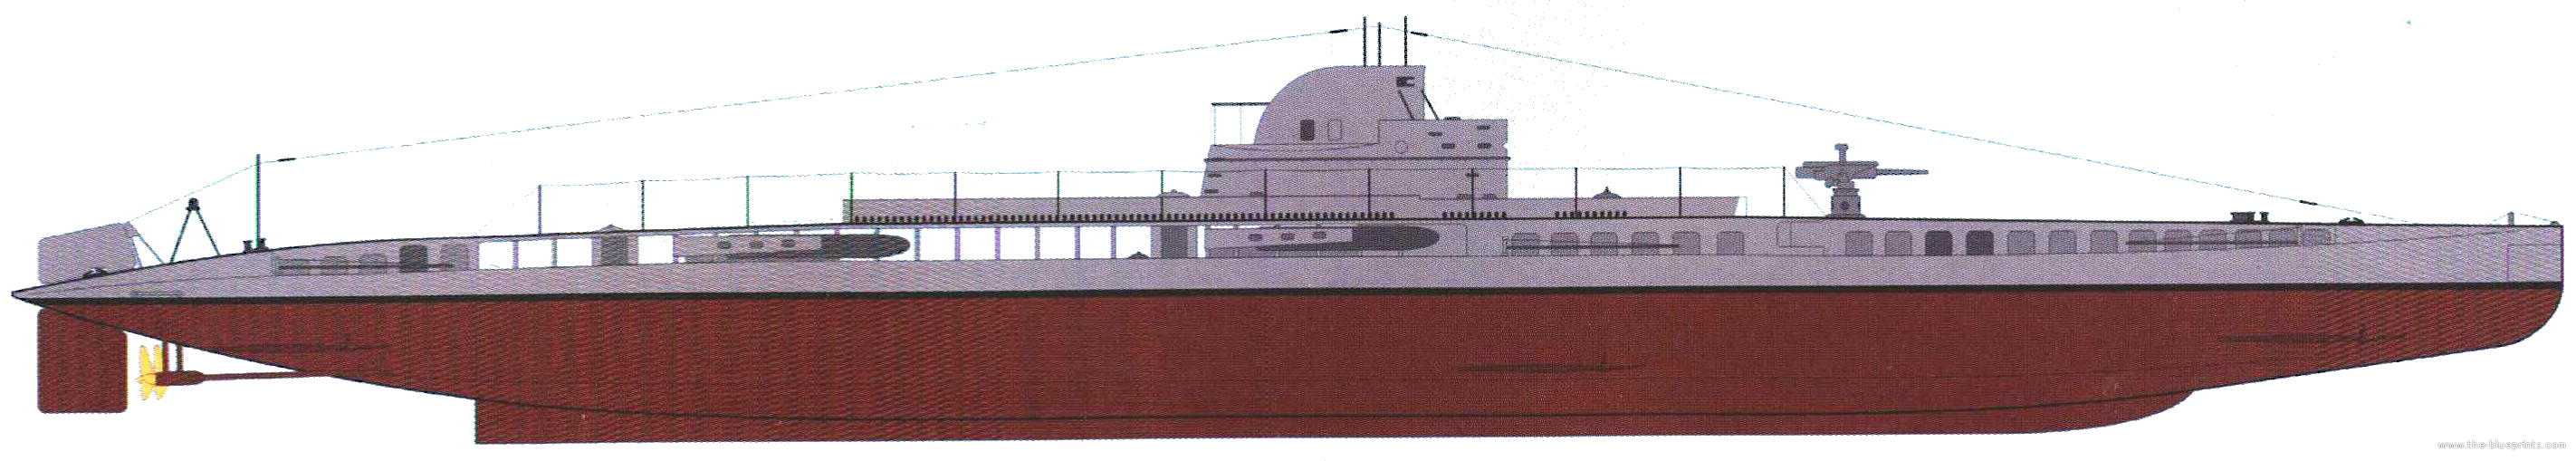 sms-u-14-1916-ex-nmf-curie-submarine.png